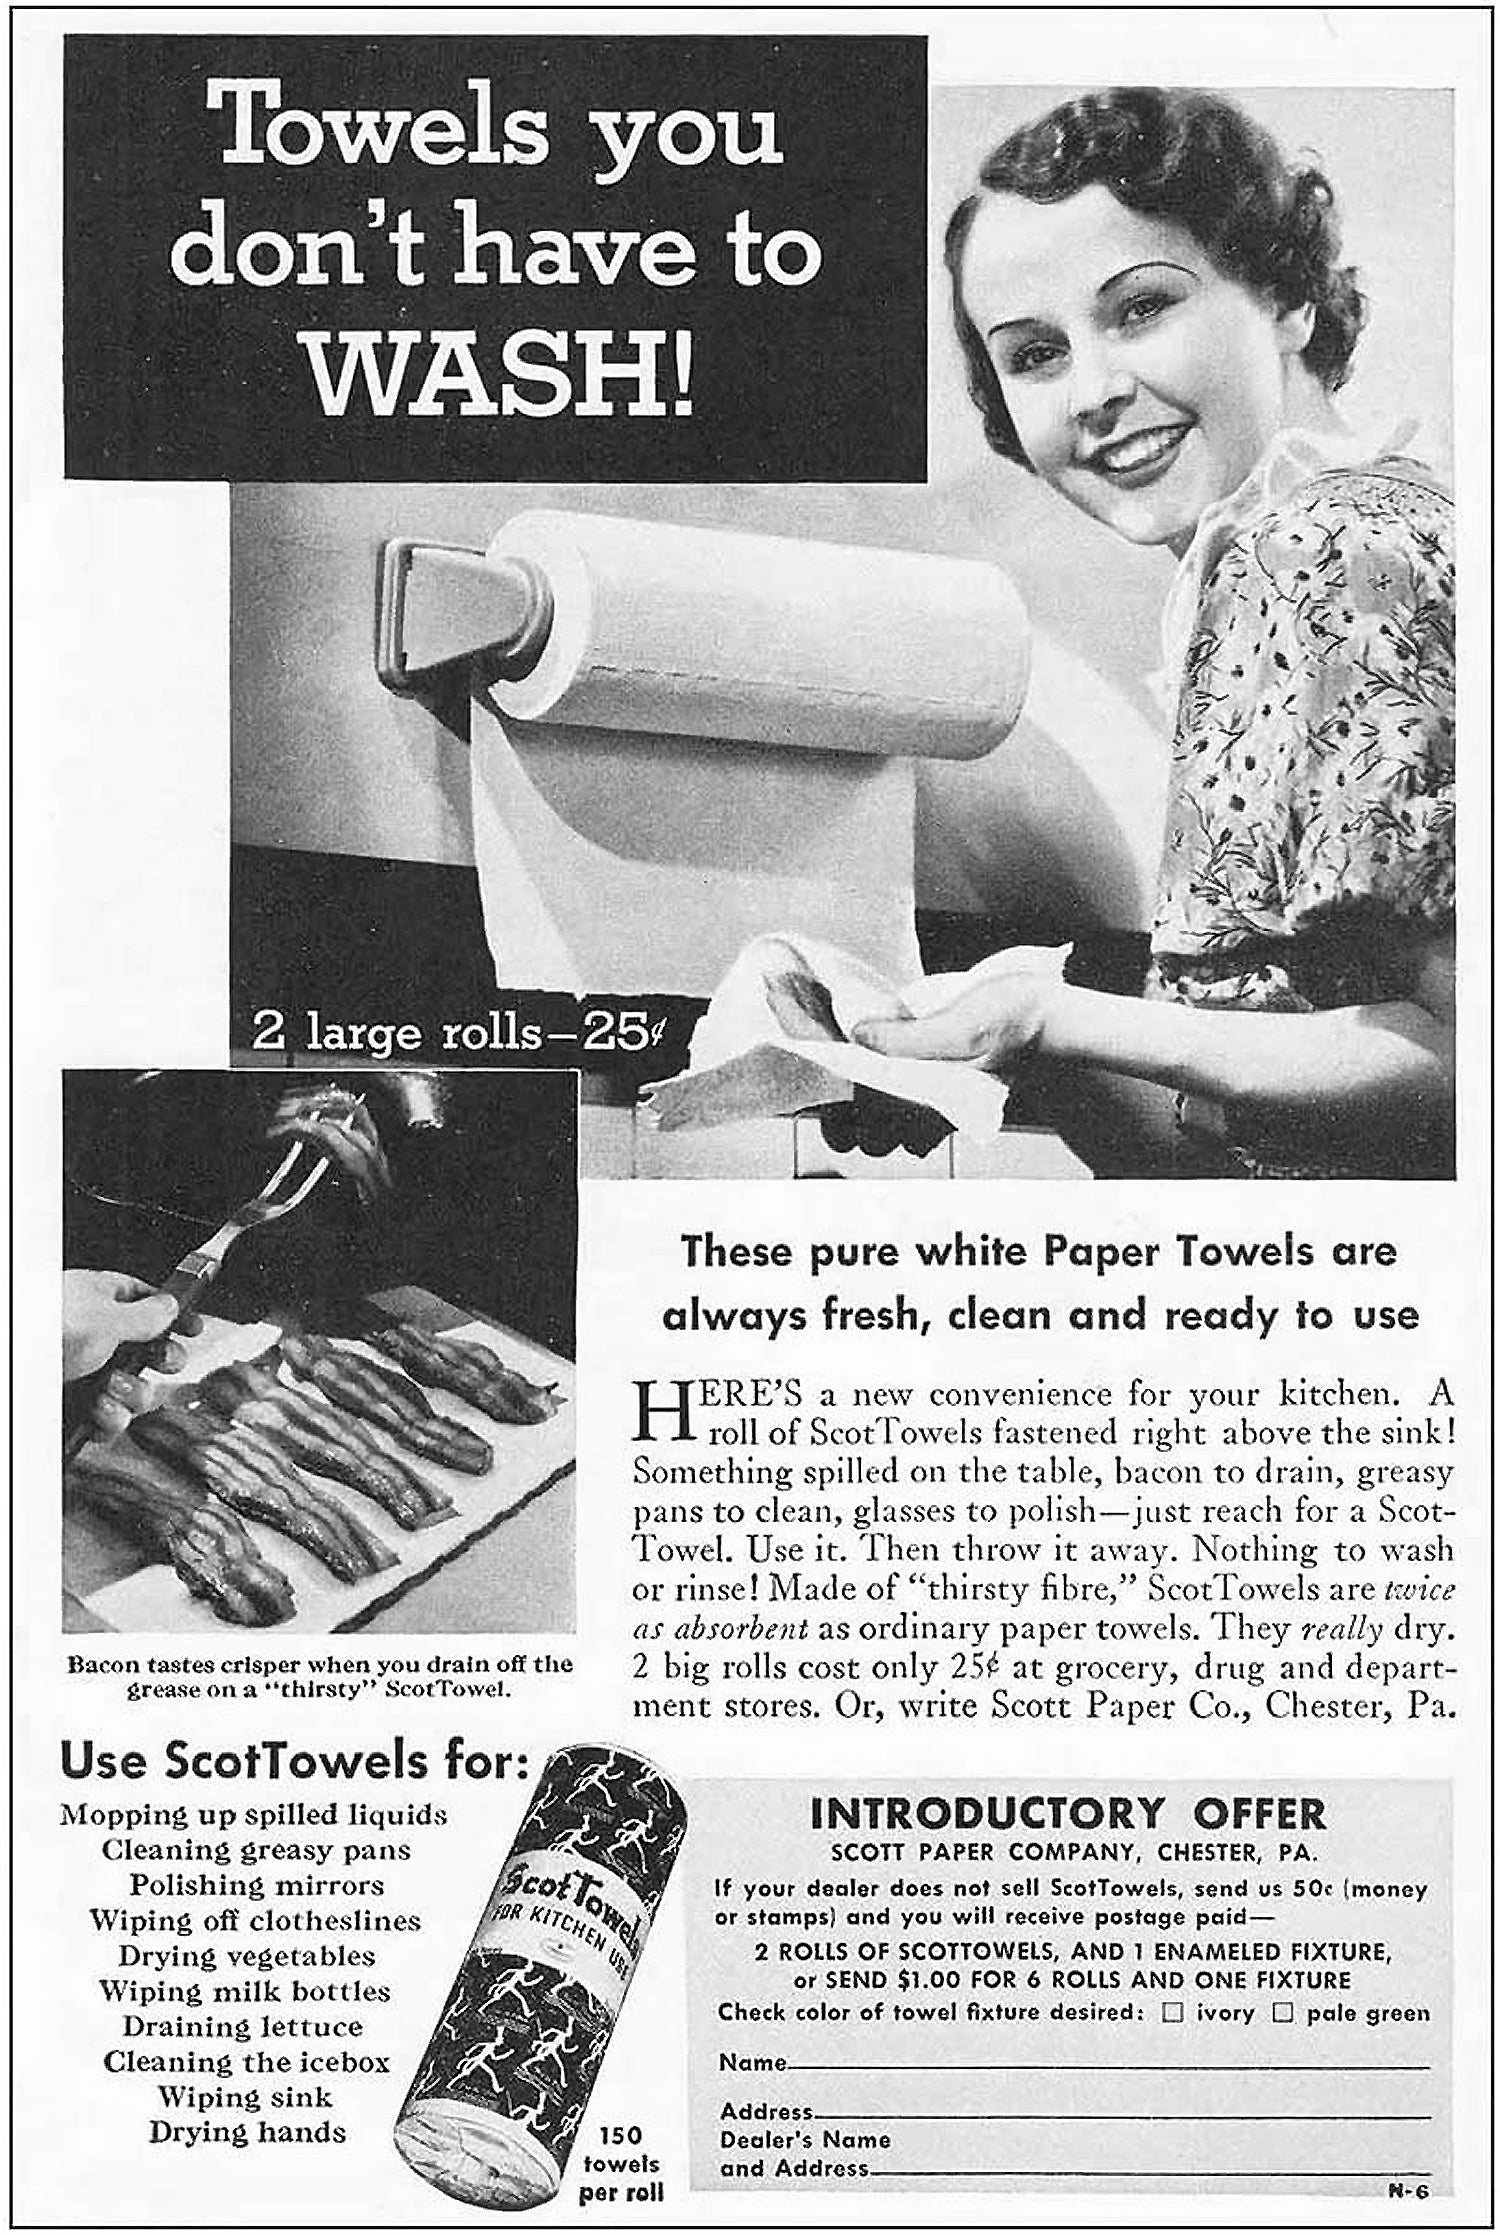 Scott Towel paper towel advertisement from 1936